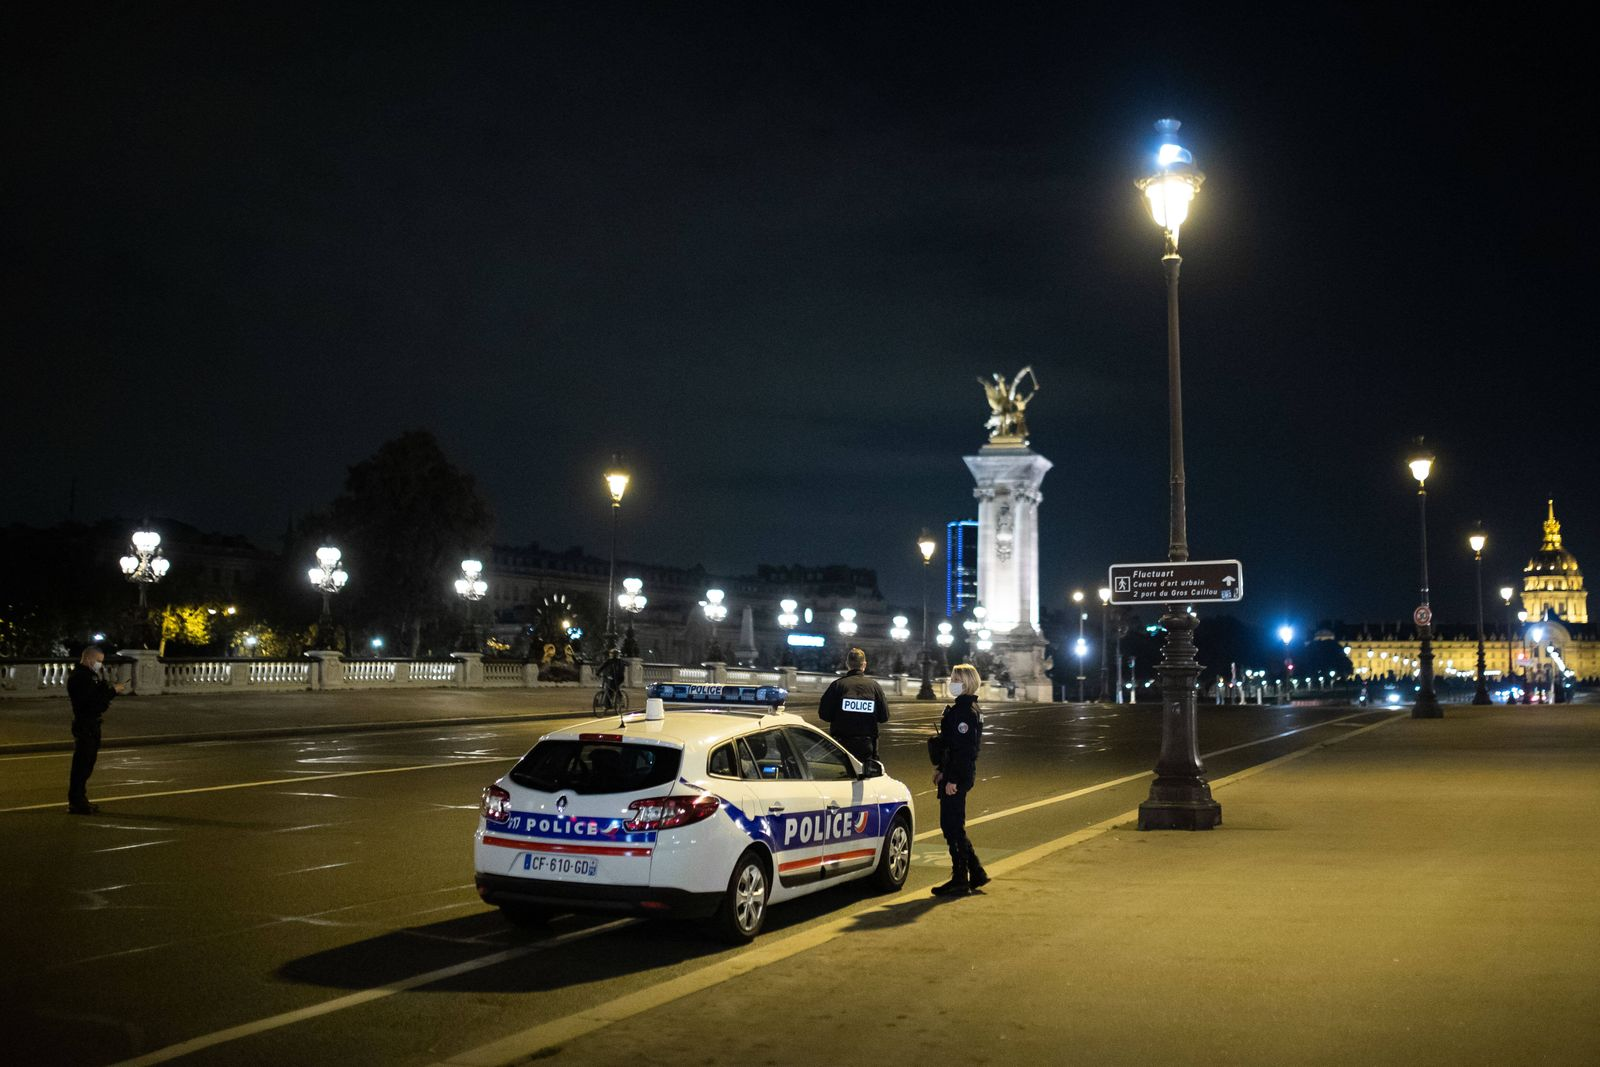 Paris, France, October 18, 2020 - Police officers in a car patrol at curfew time on the Pont Alexandre III. The French